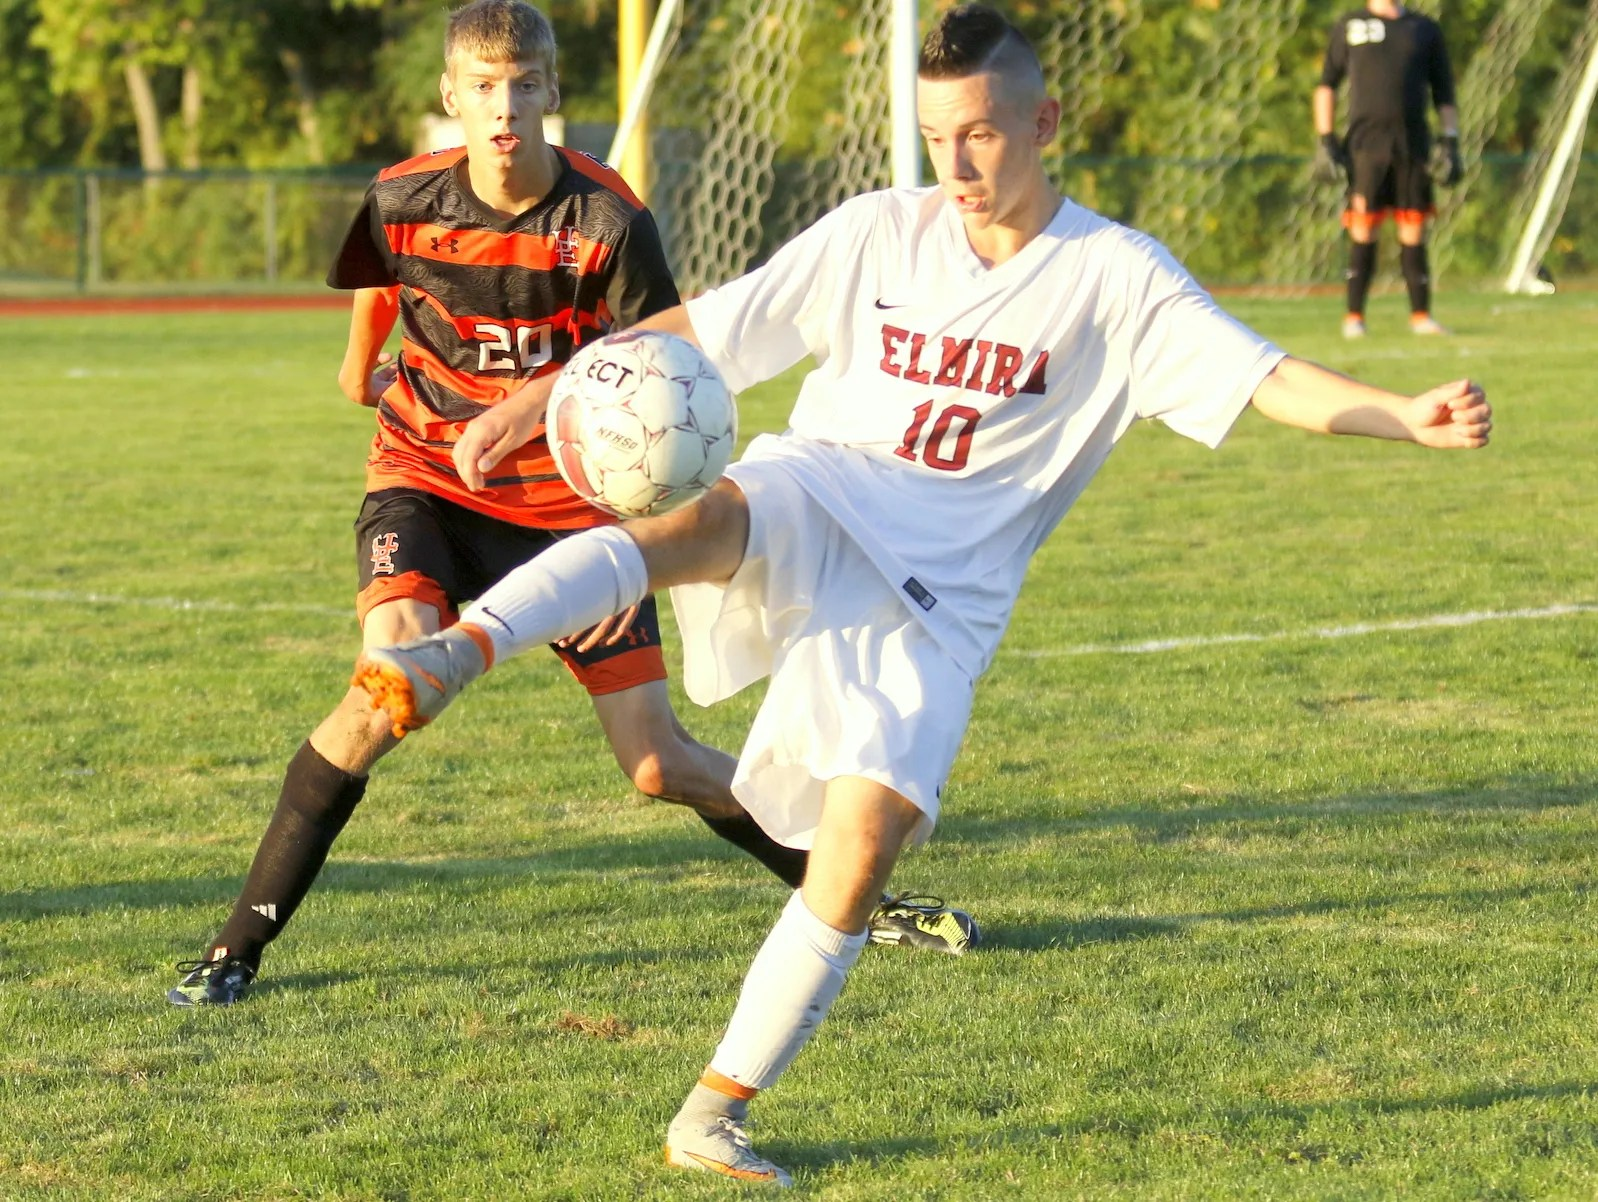 97779500962c Logan Brimmer of Elmira prepares to kick the ball while Union-Endicott s  Nazar Fedorchuk fight